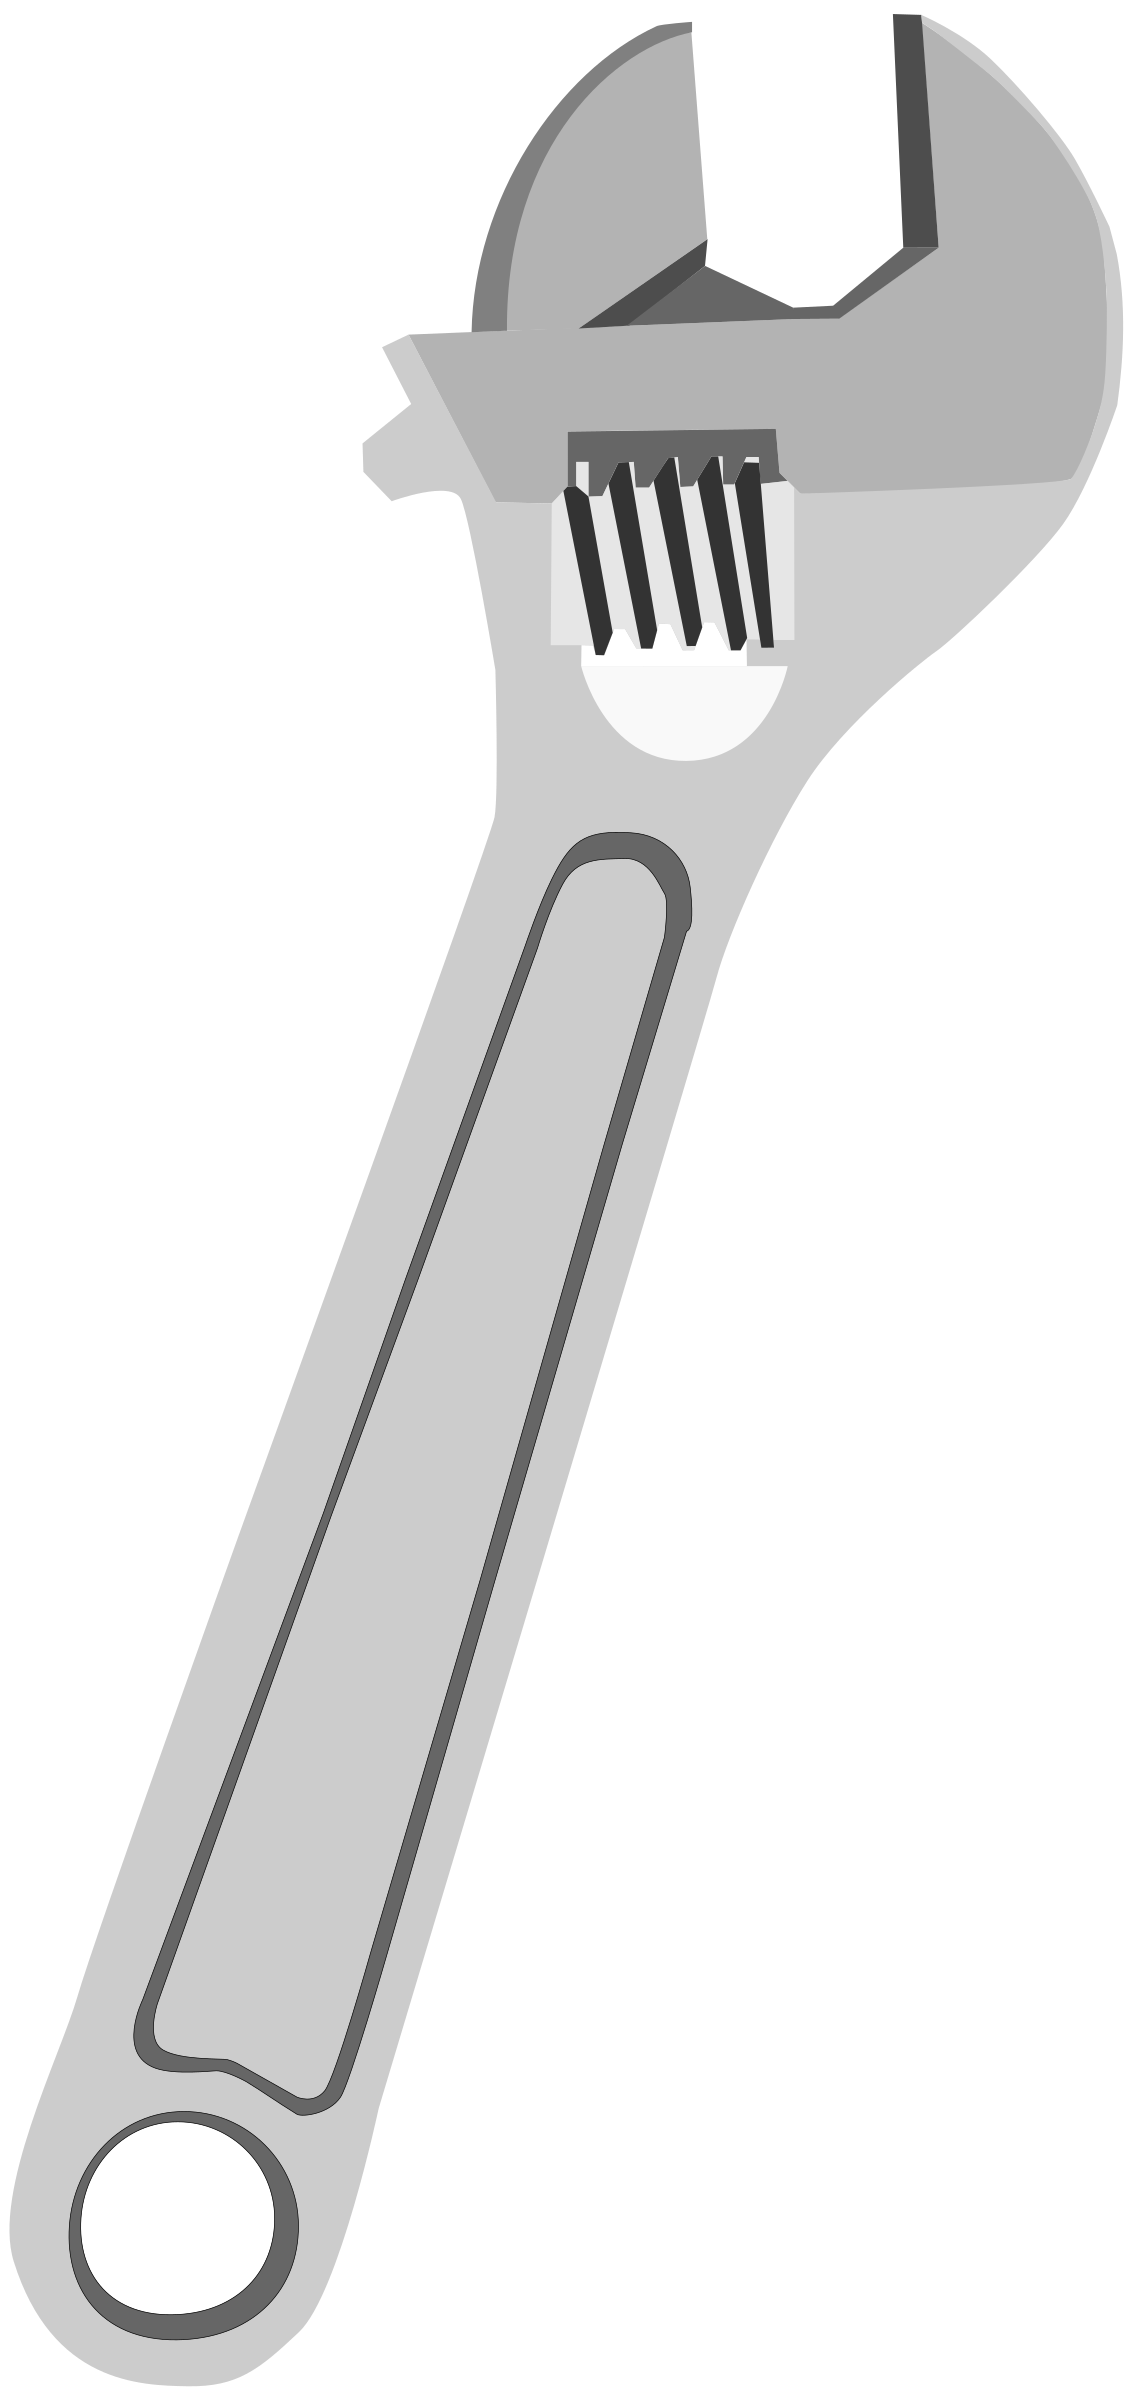 Adjustable Wrench by manio1